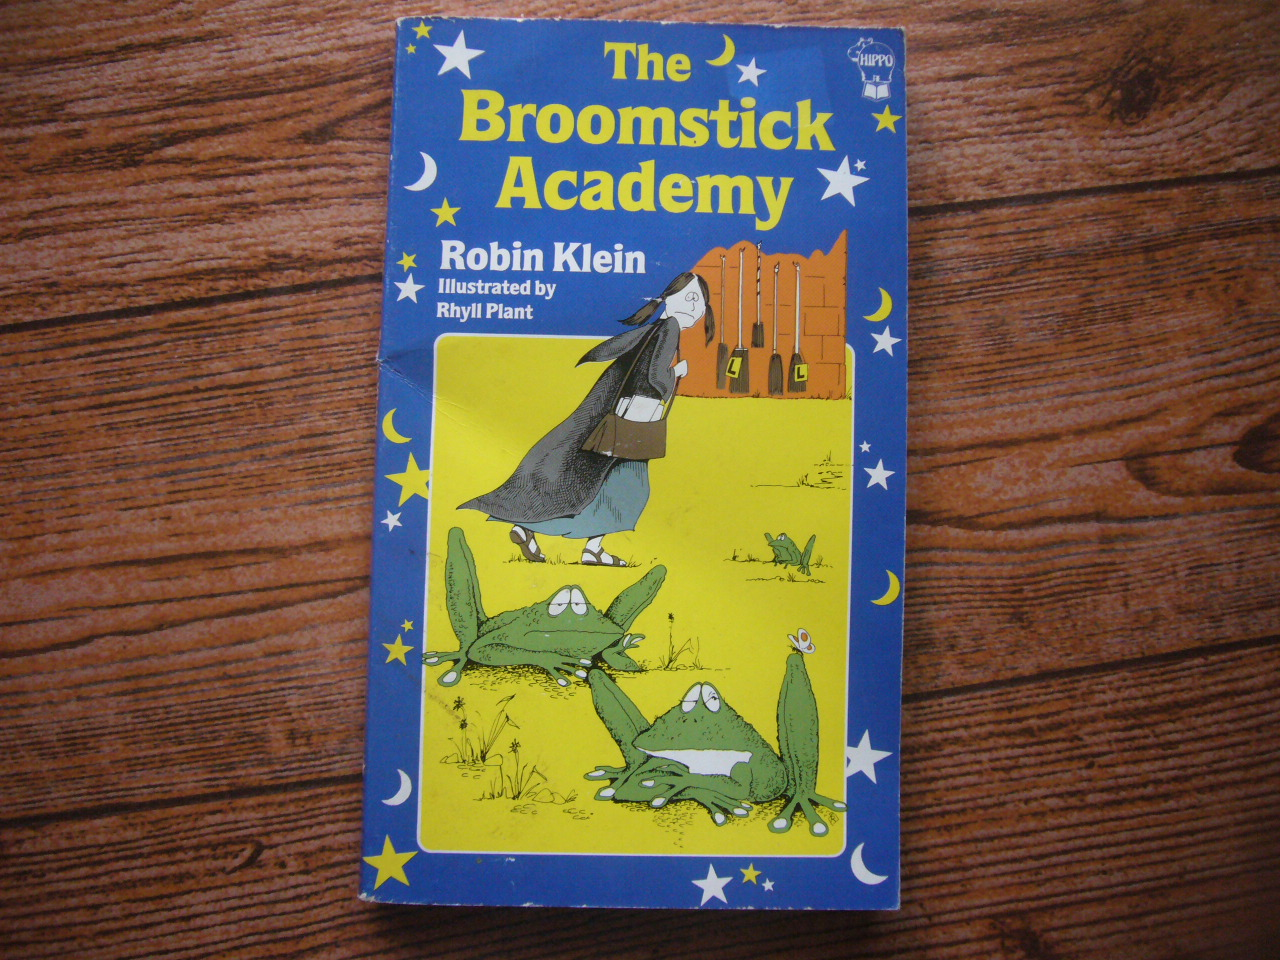 The Broomstick Academy